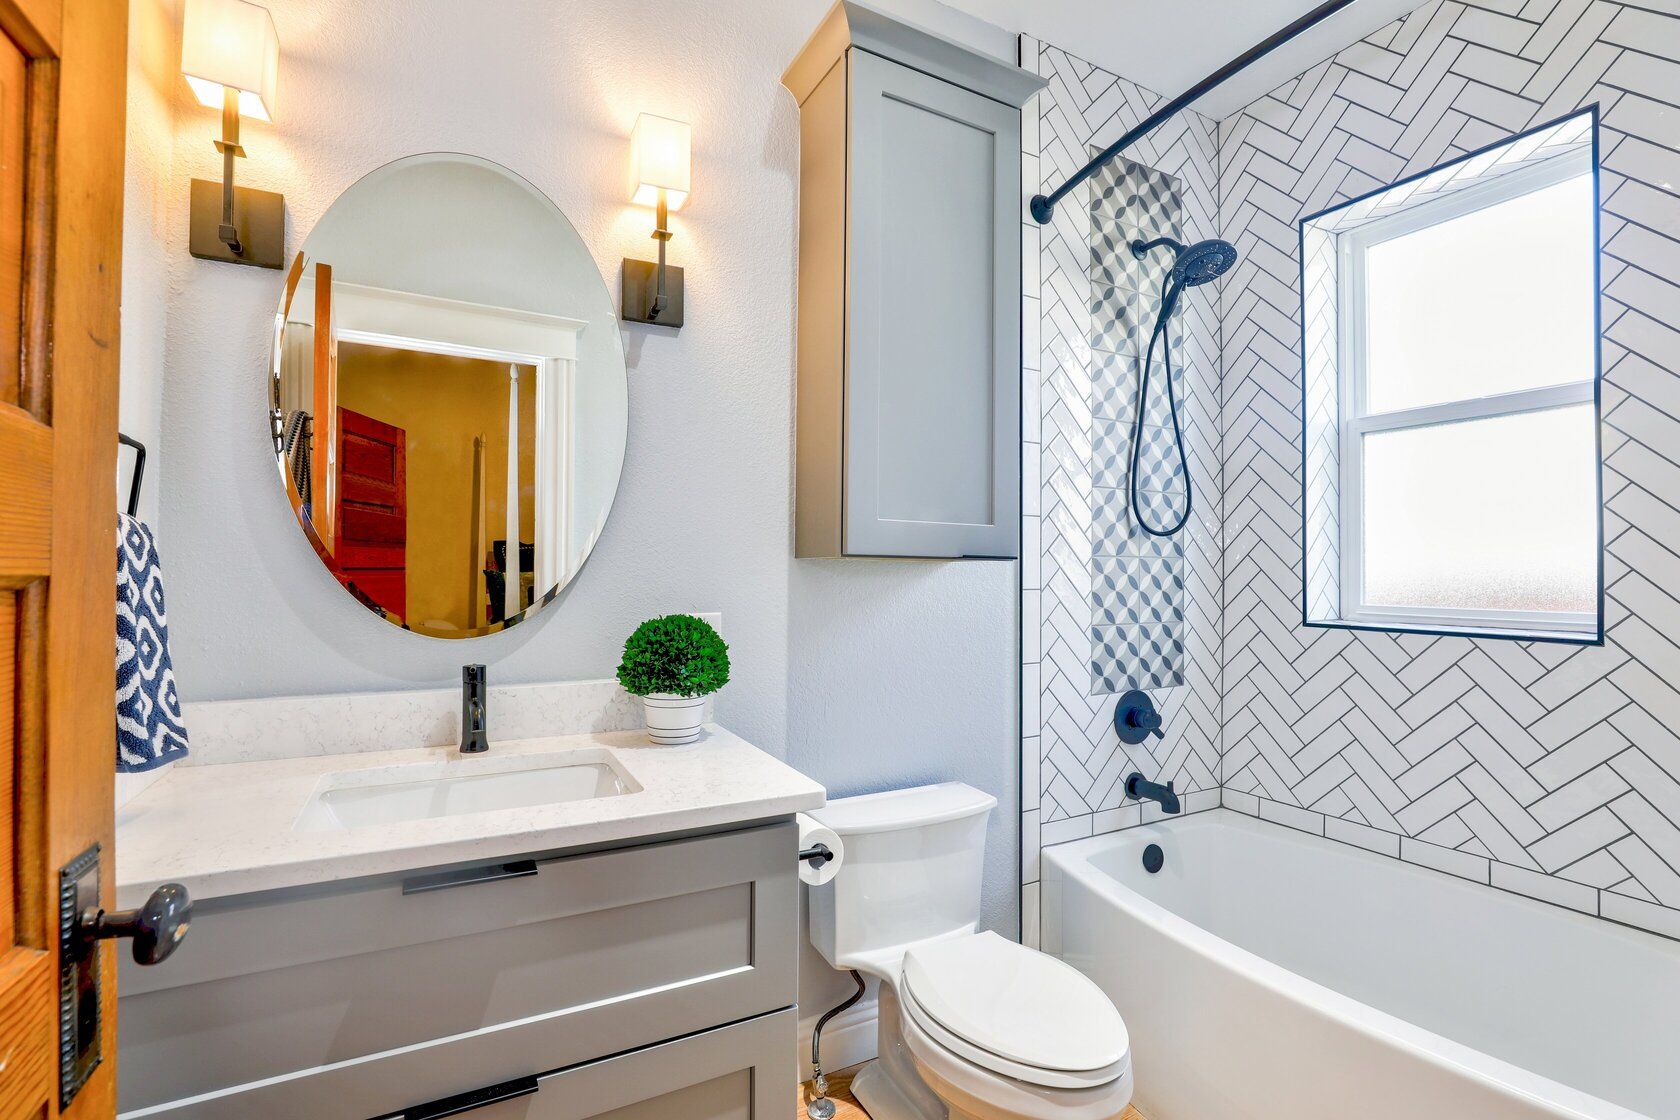 4 Affordable Ways to Renovate Your Bathroom – Our Guide